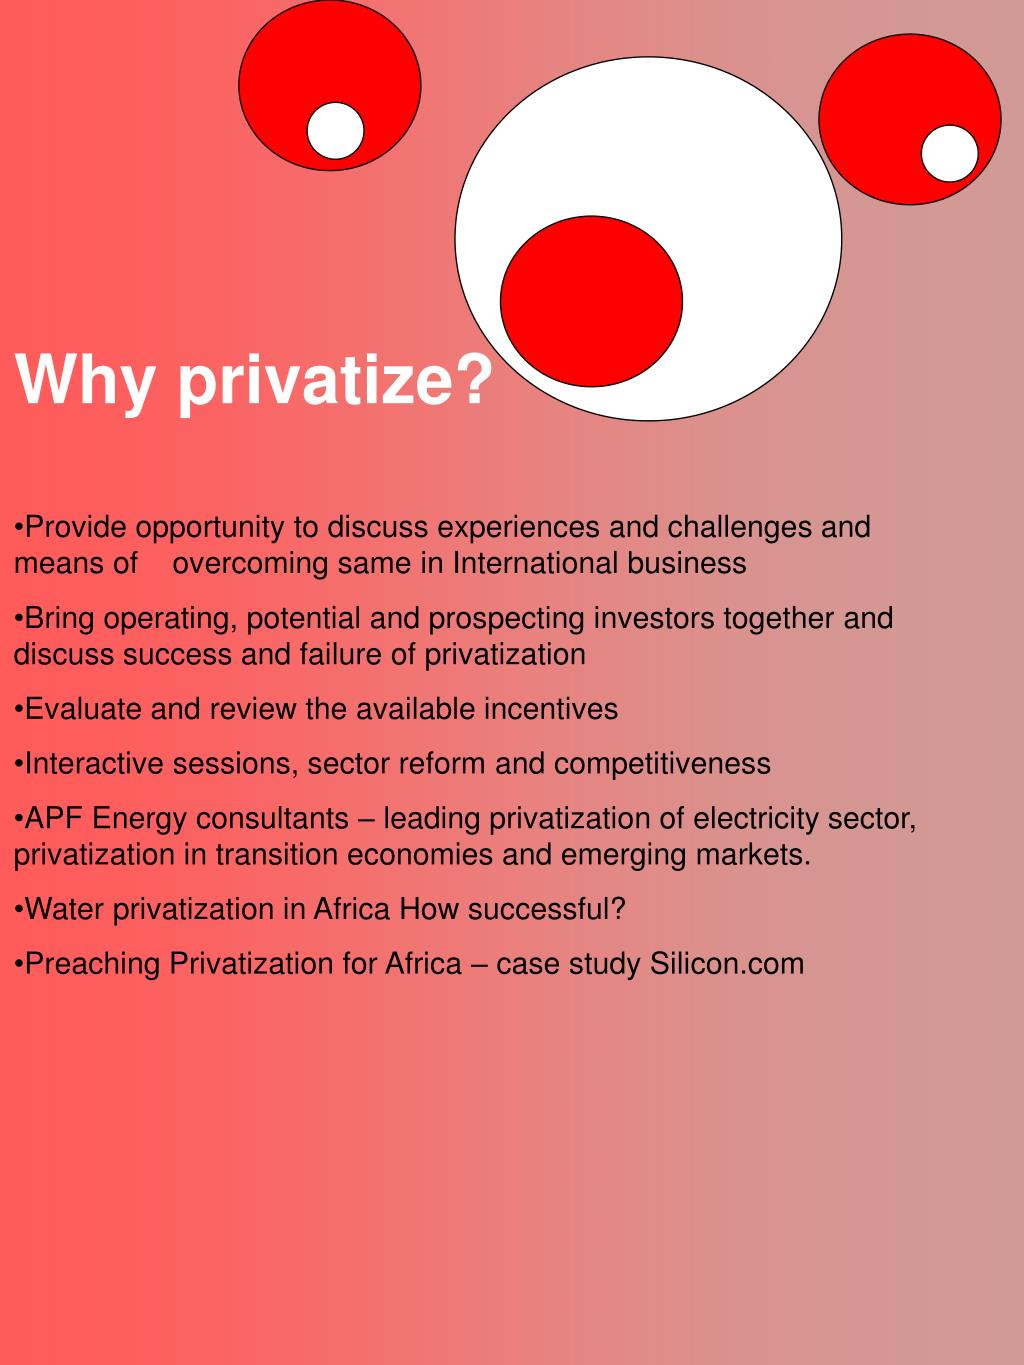 Why privatize?